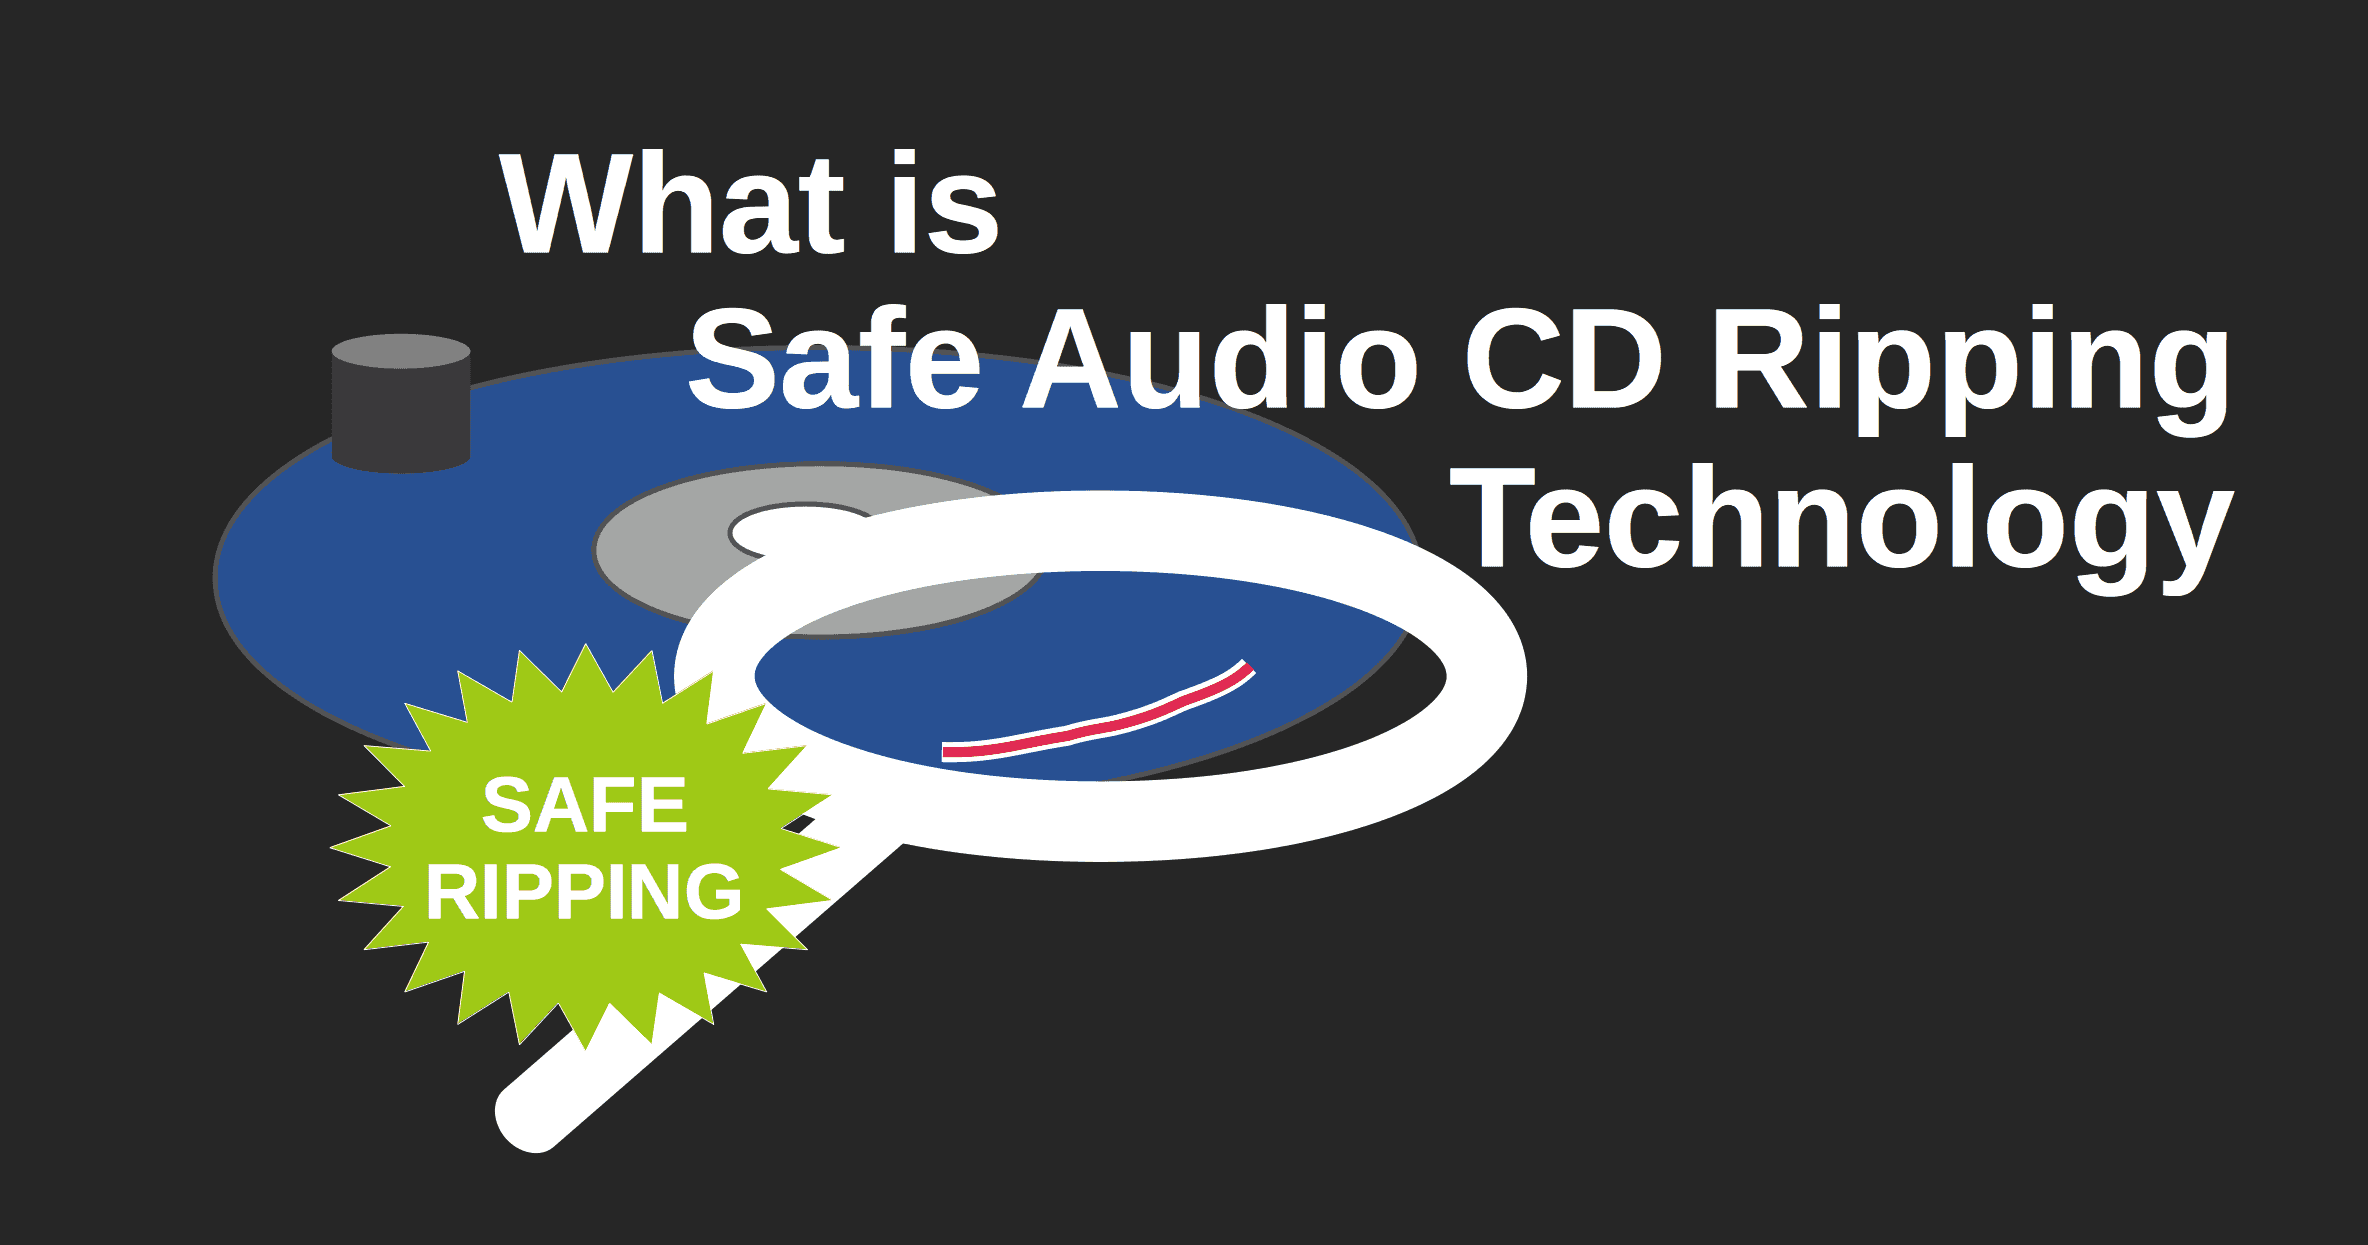 Safe CD ripping technology